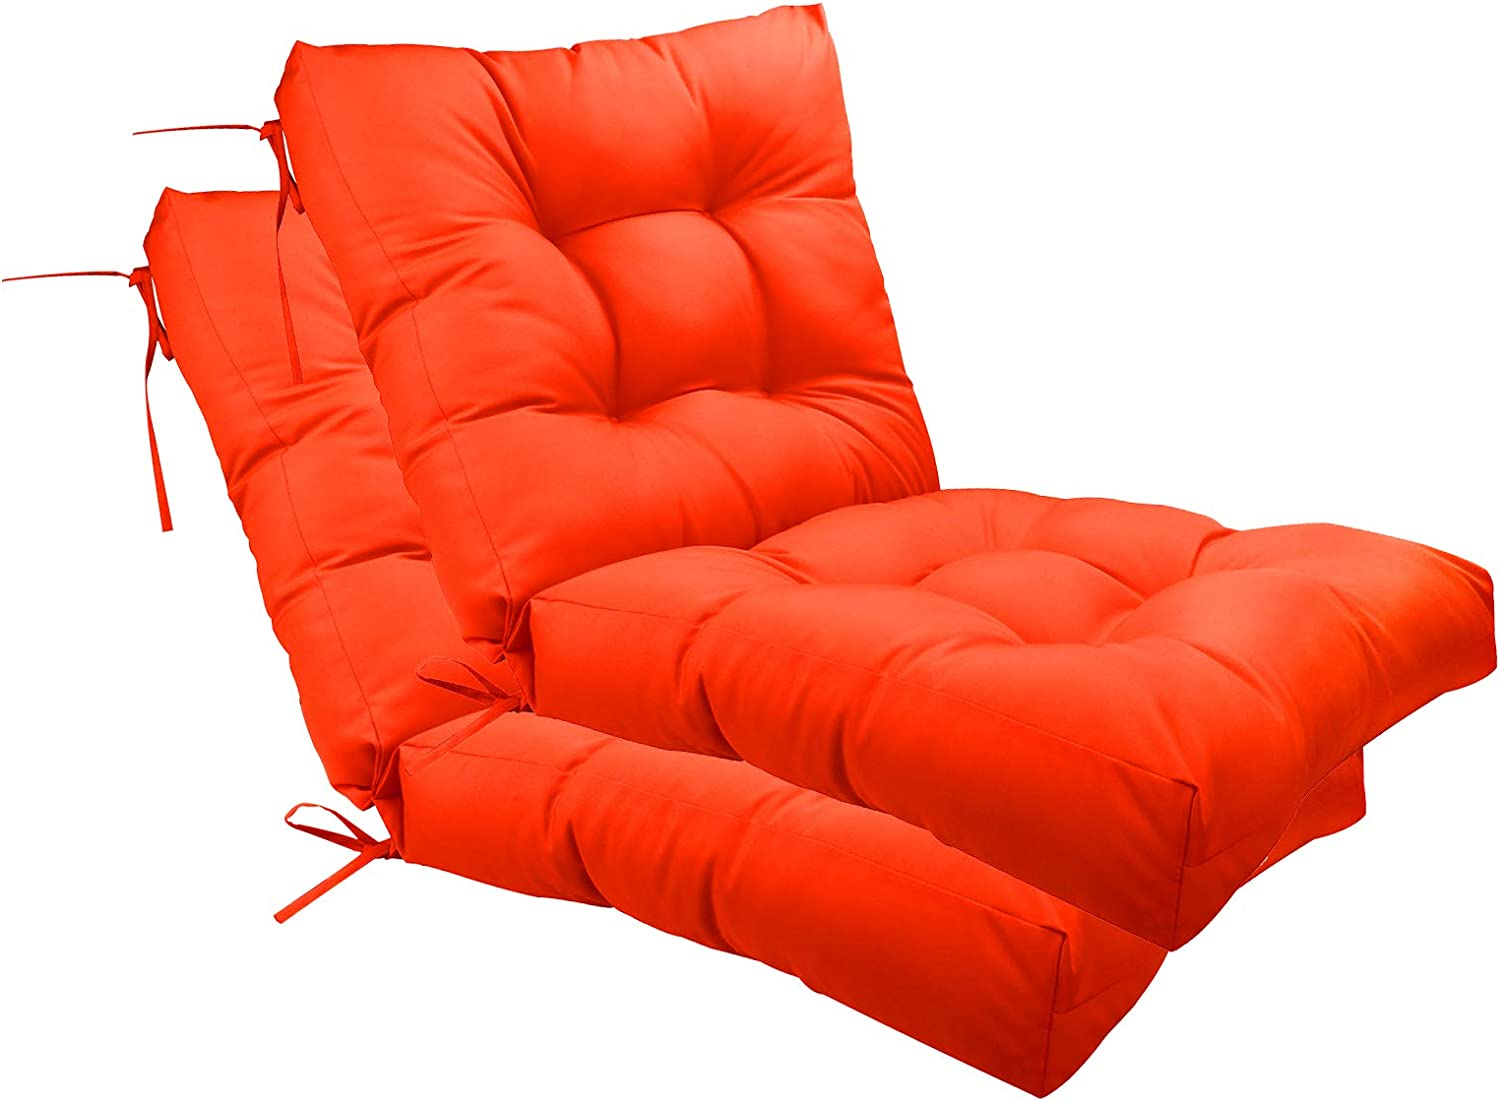 Colorado Springs Mall SewKer Outdoor Seat Back Popular brand in the world Chair Cushion Tufted x 20